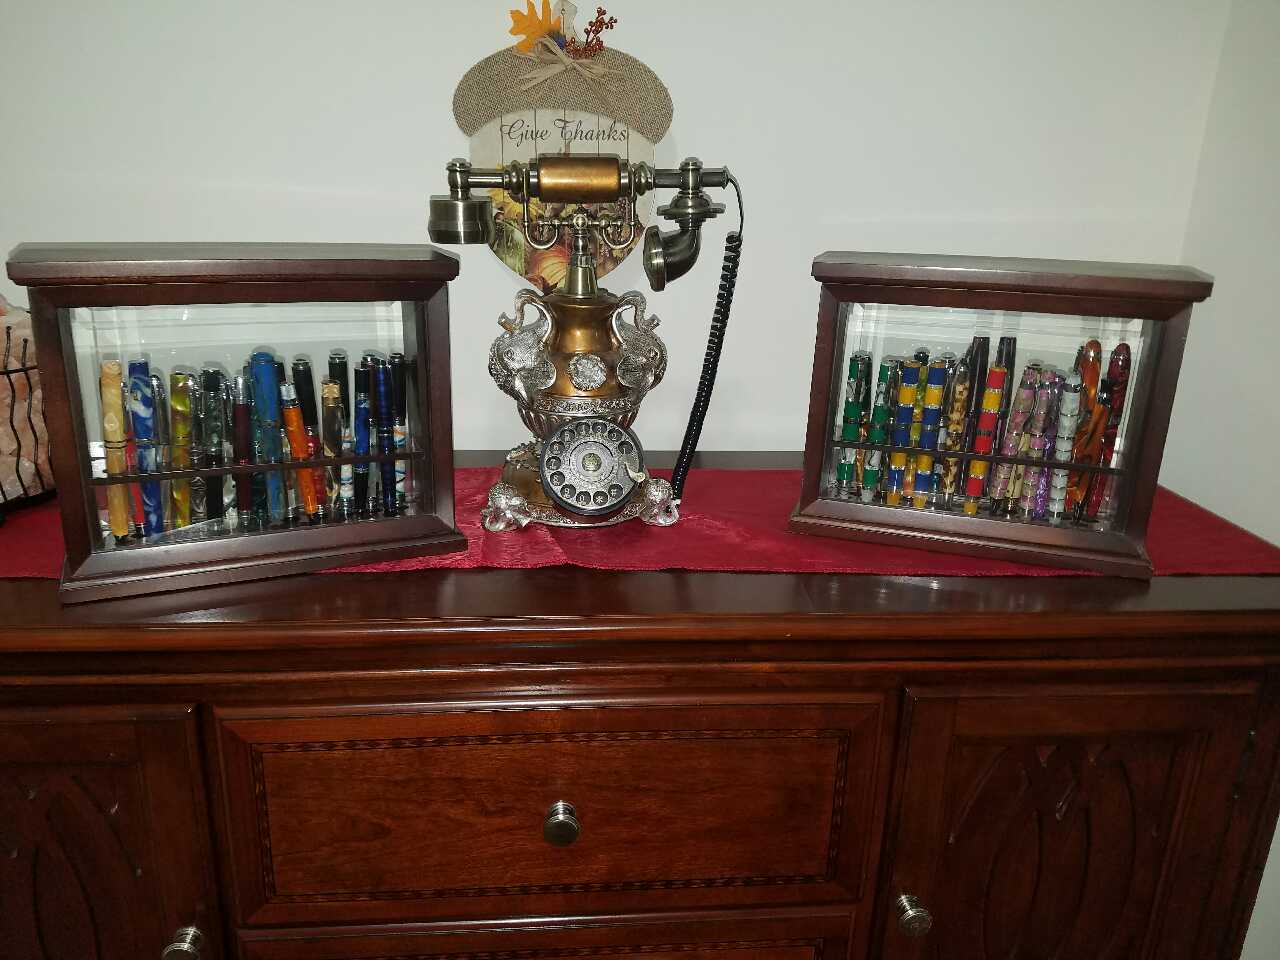 Pens and Pencils: : -- ALL --: Monteverde etc